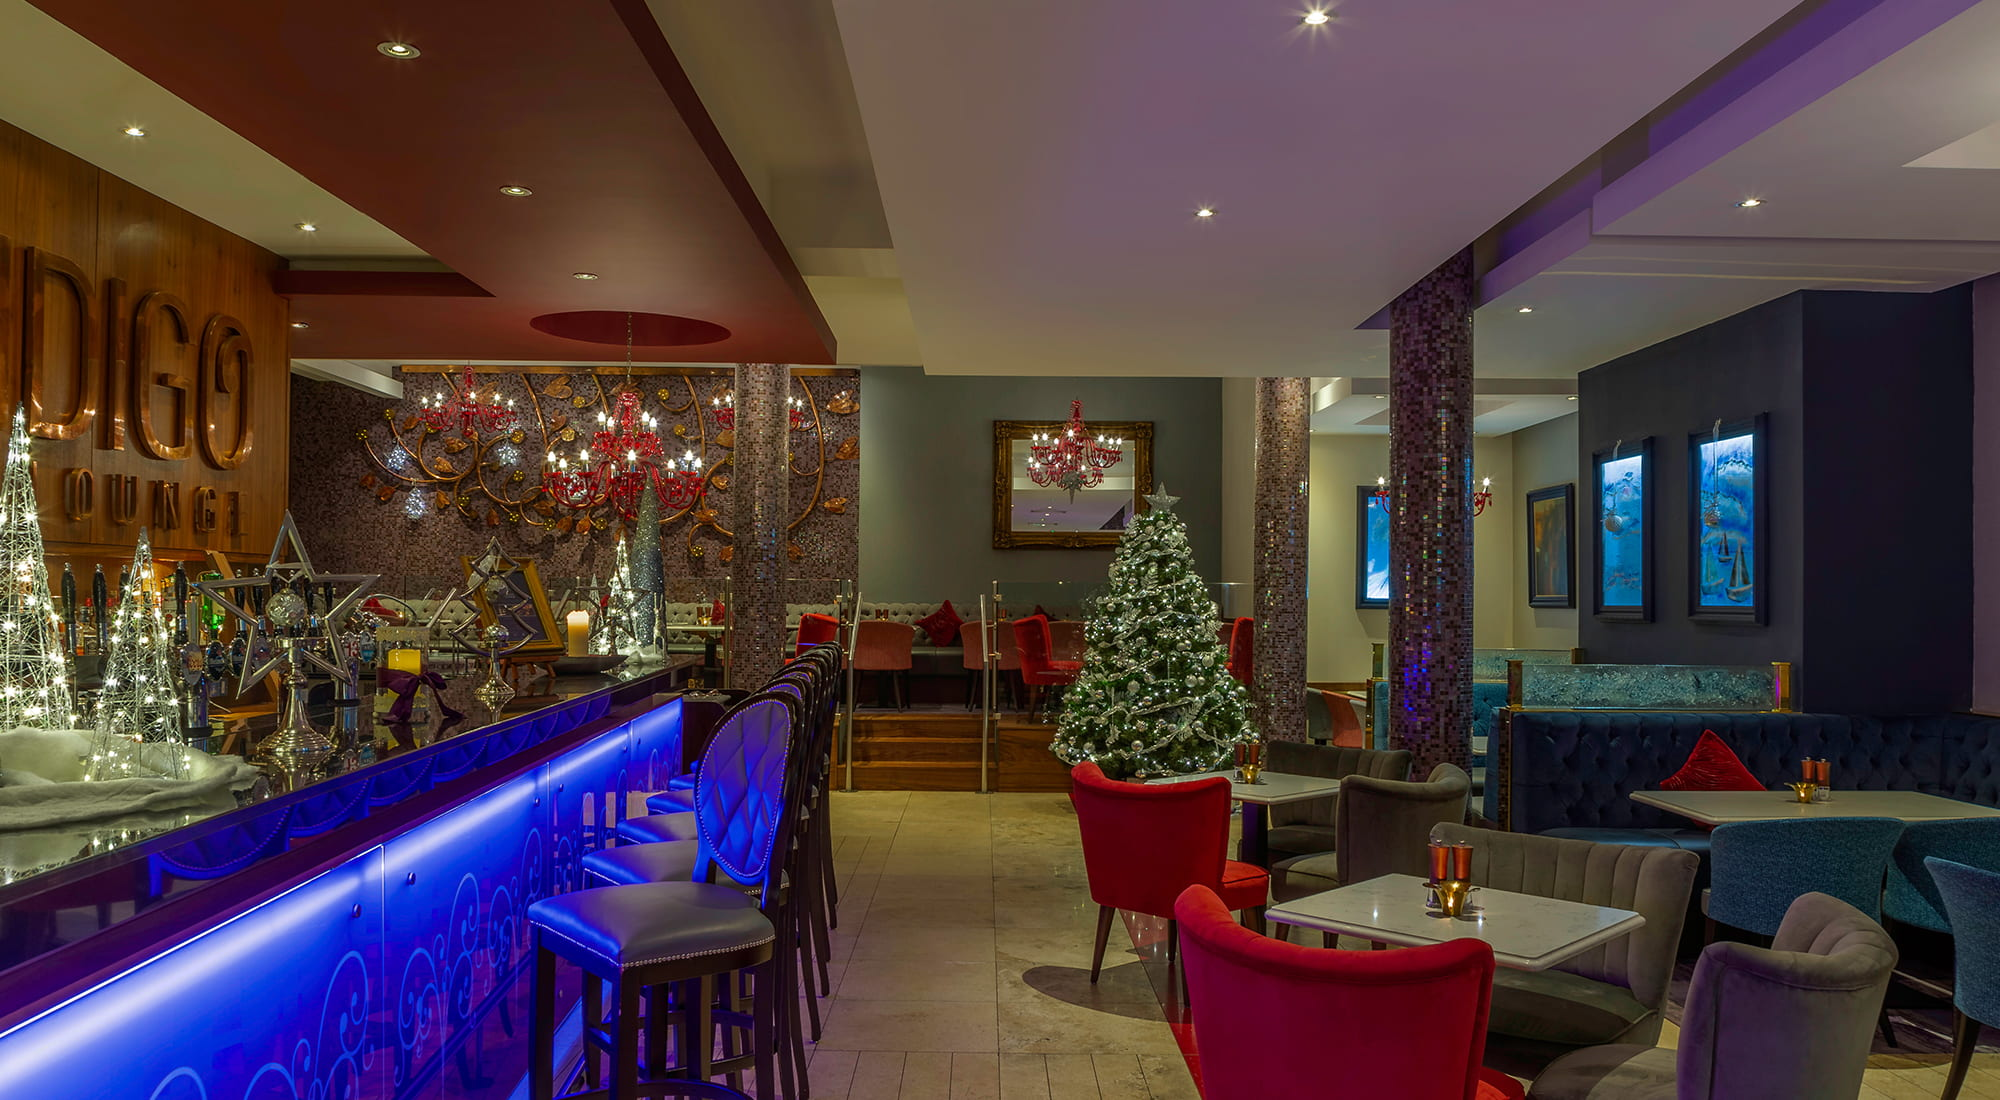 Indigo Lounge at Christmas